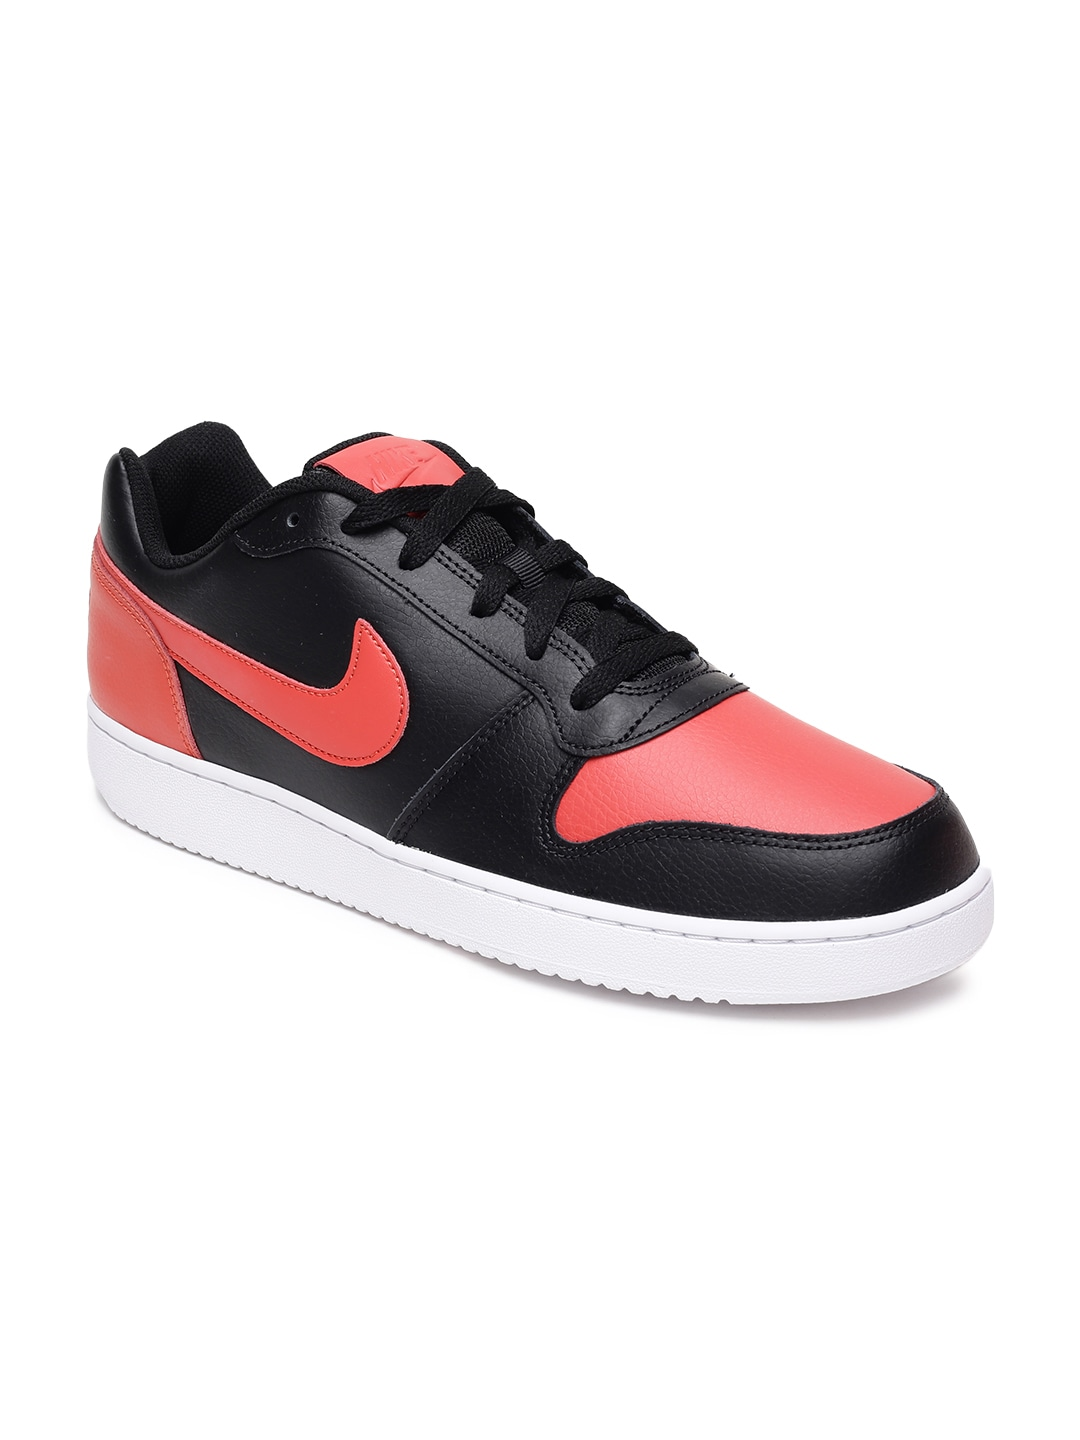 3a6bde6e8e7133 Nike Leather Casual Shoes - Buy Nike Leather Casual Shoes online in India